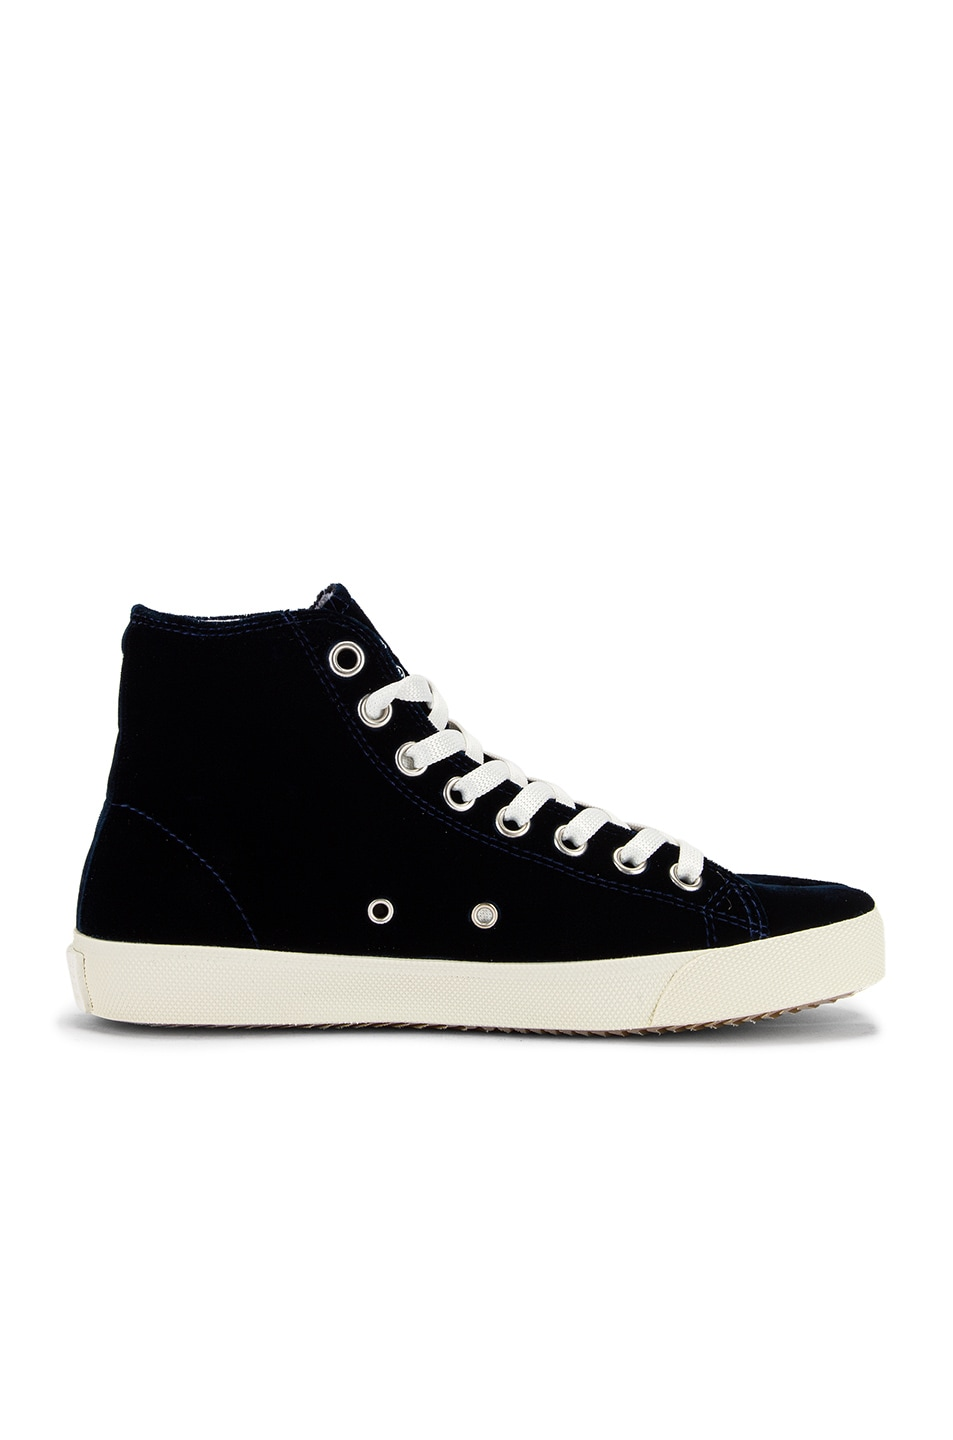 Image 7 of Maison Margiela Toe High Top Sneakers in Navy Blue